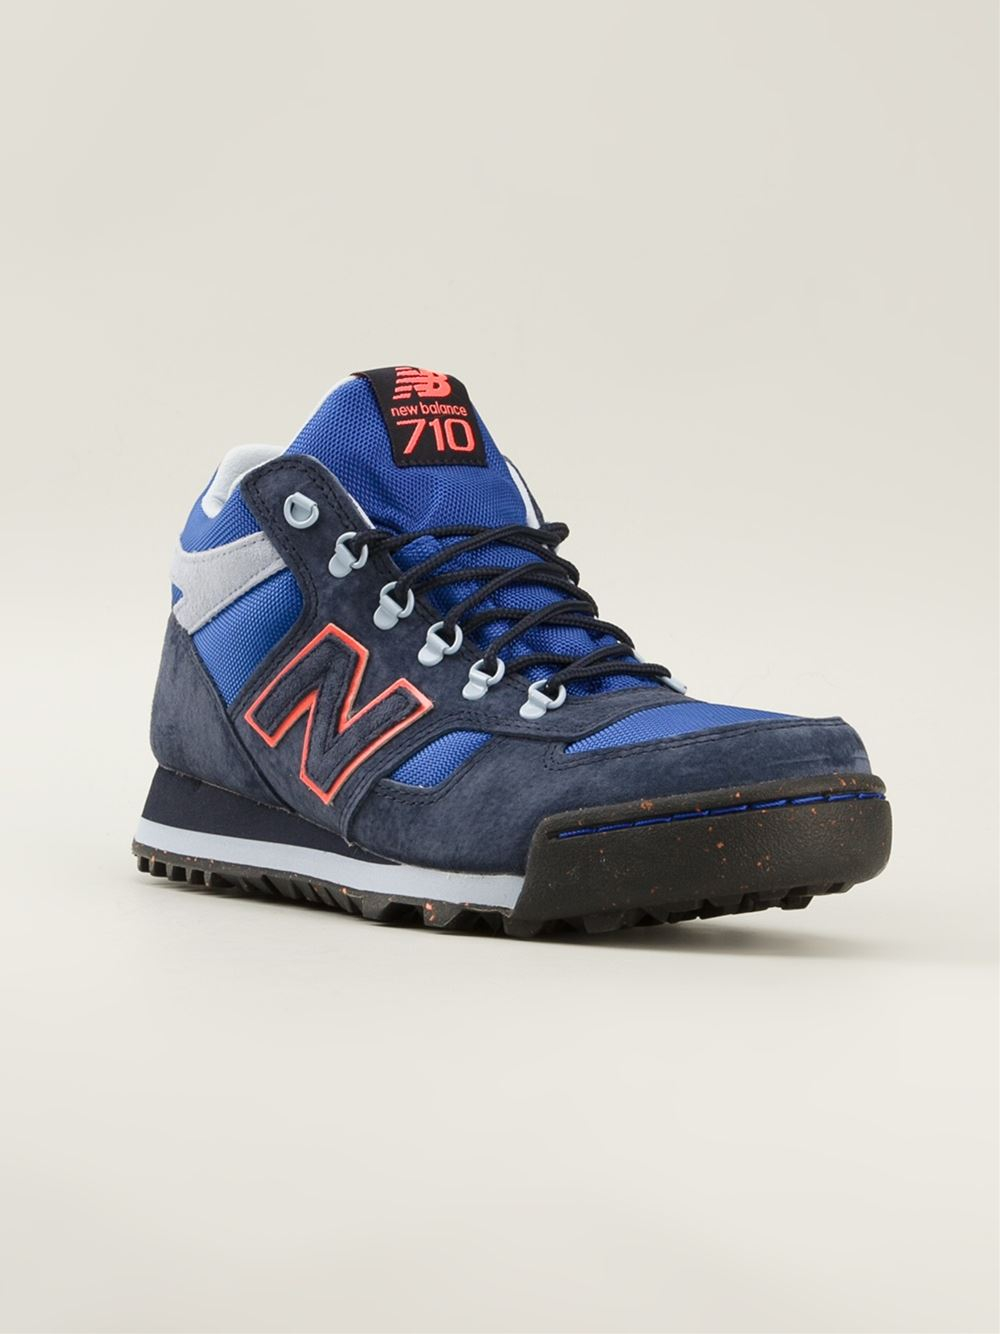 New Balance 'H710' Hi-Top Sneakers in Blue for Men - Lyst